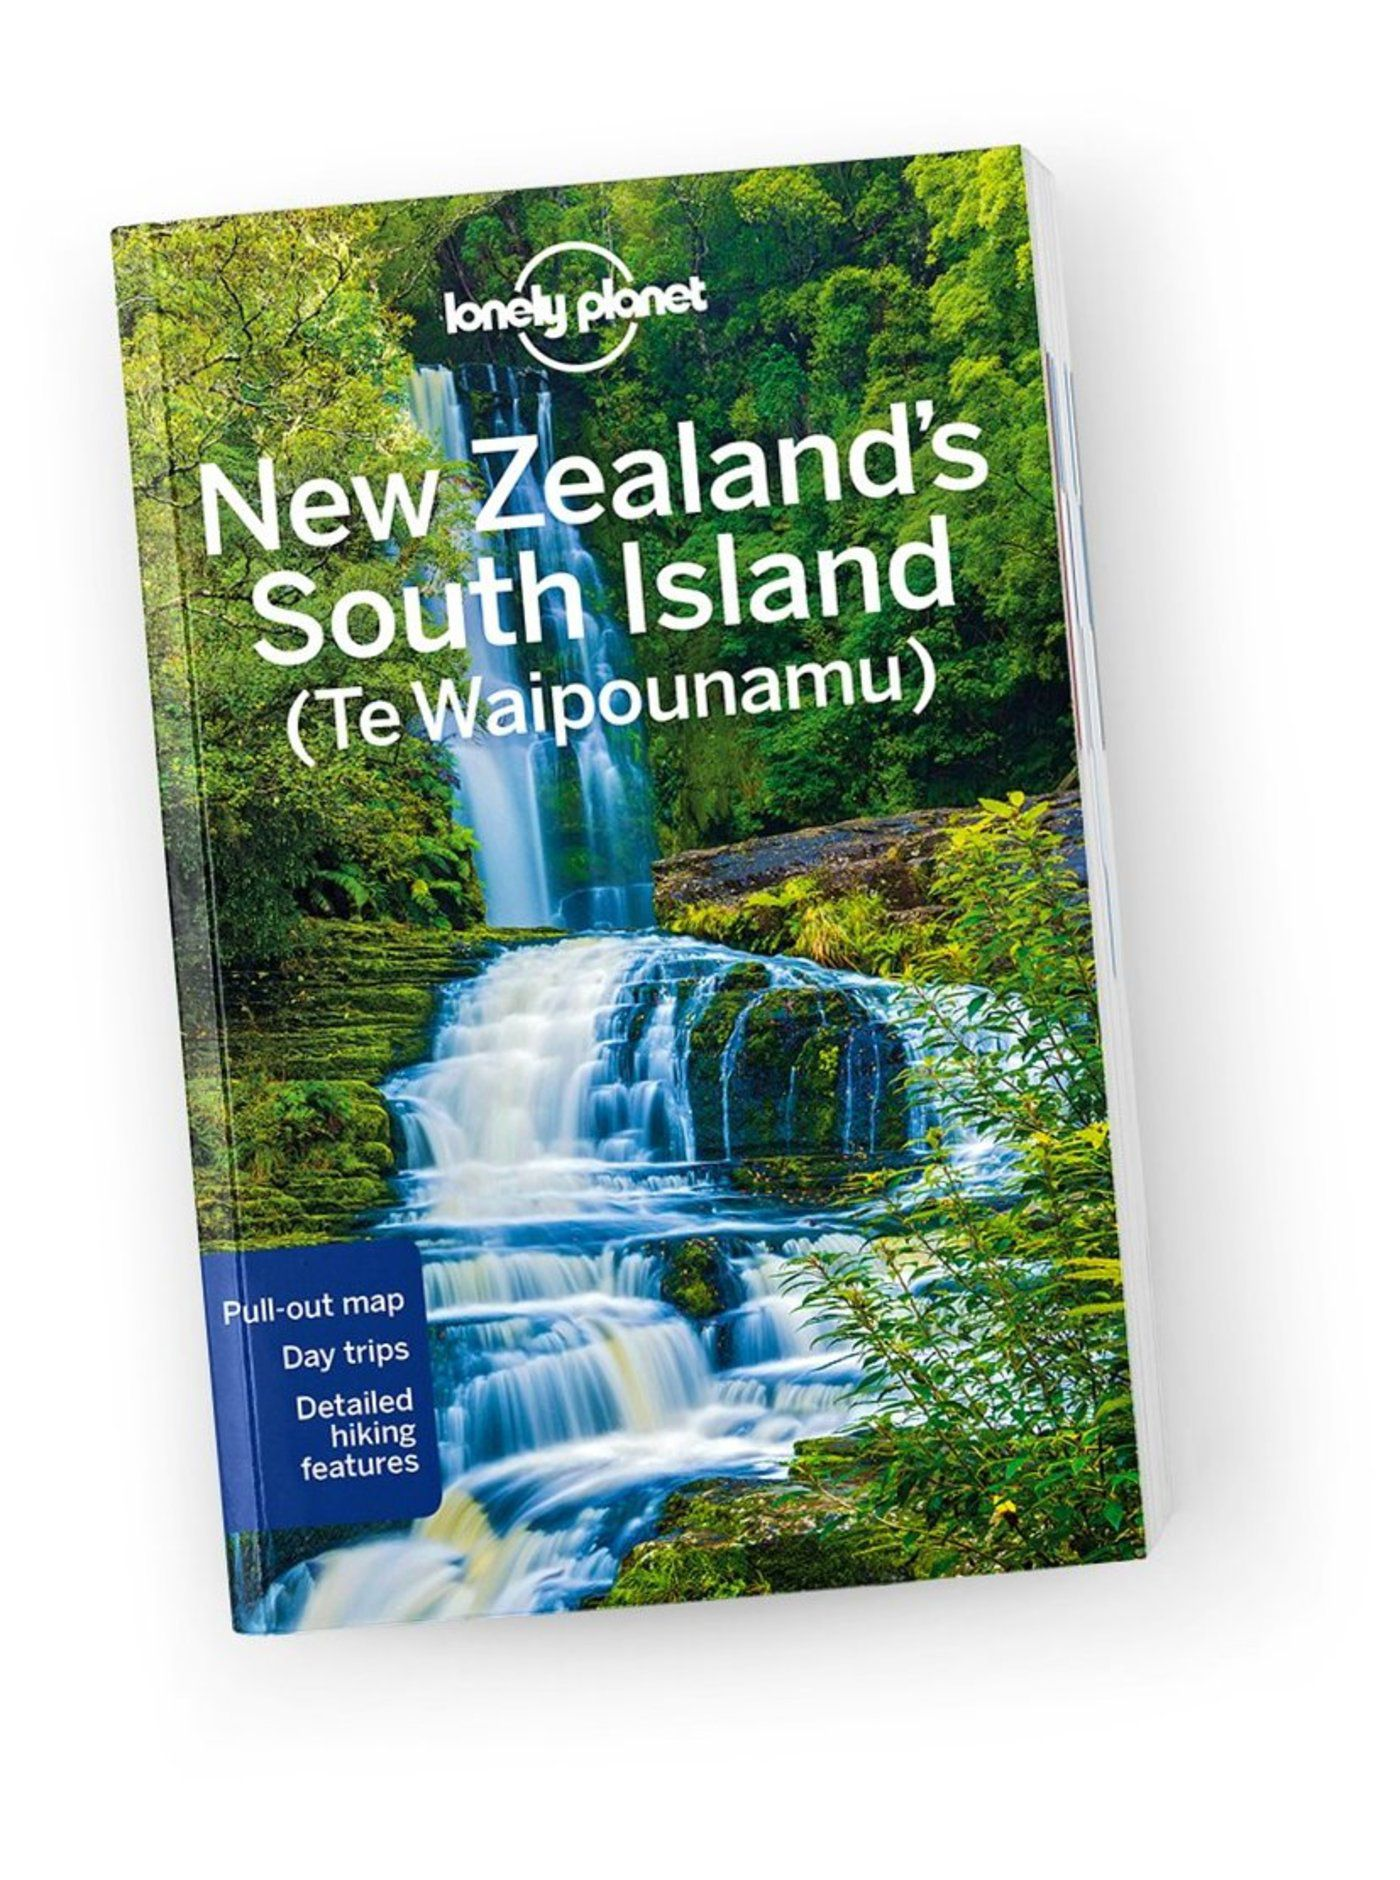 New Zealand's South Island travel guide - 6th edition